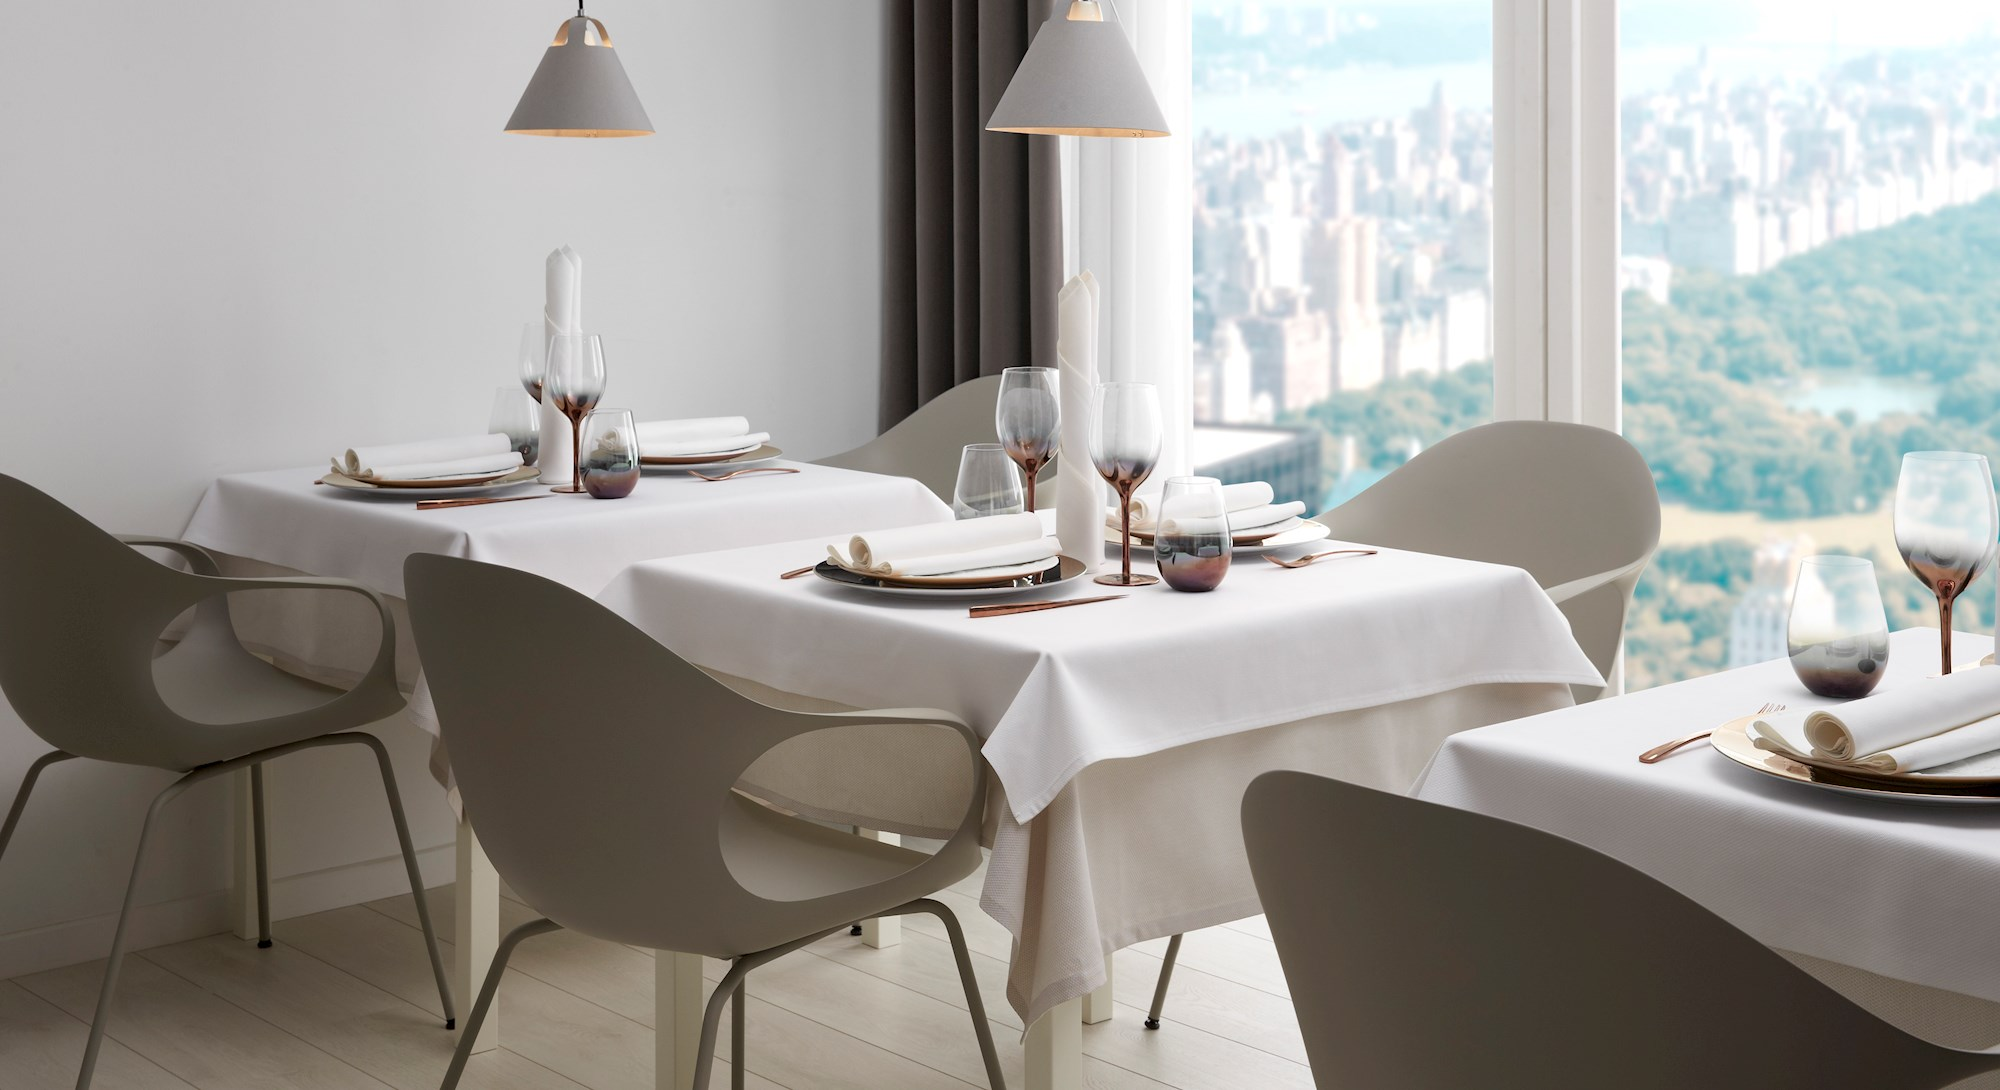 Crc collection - table linen